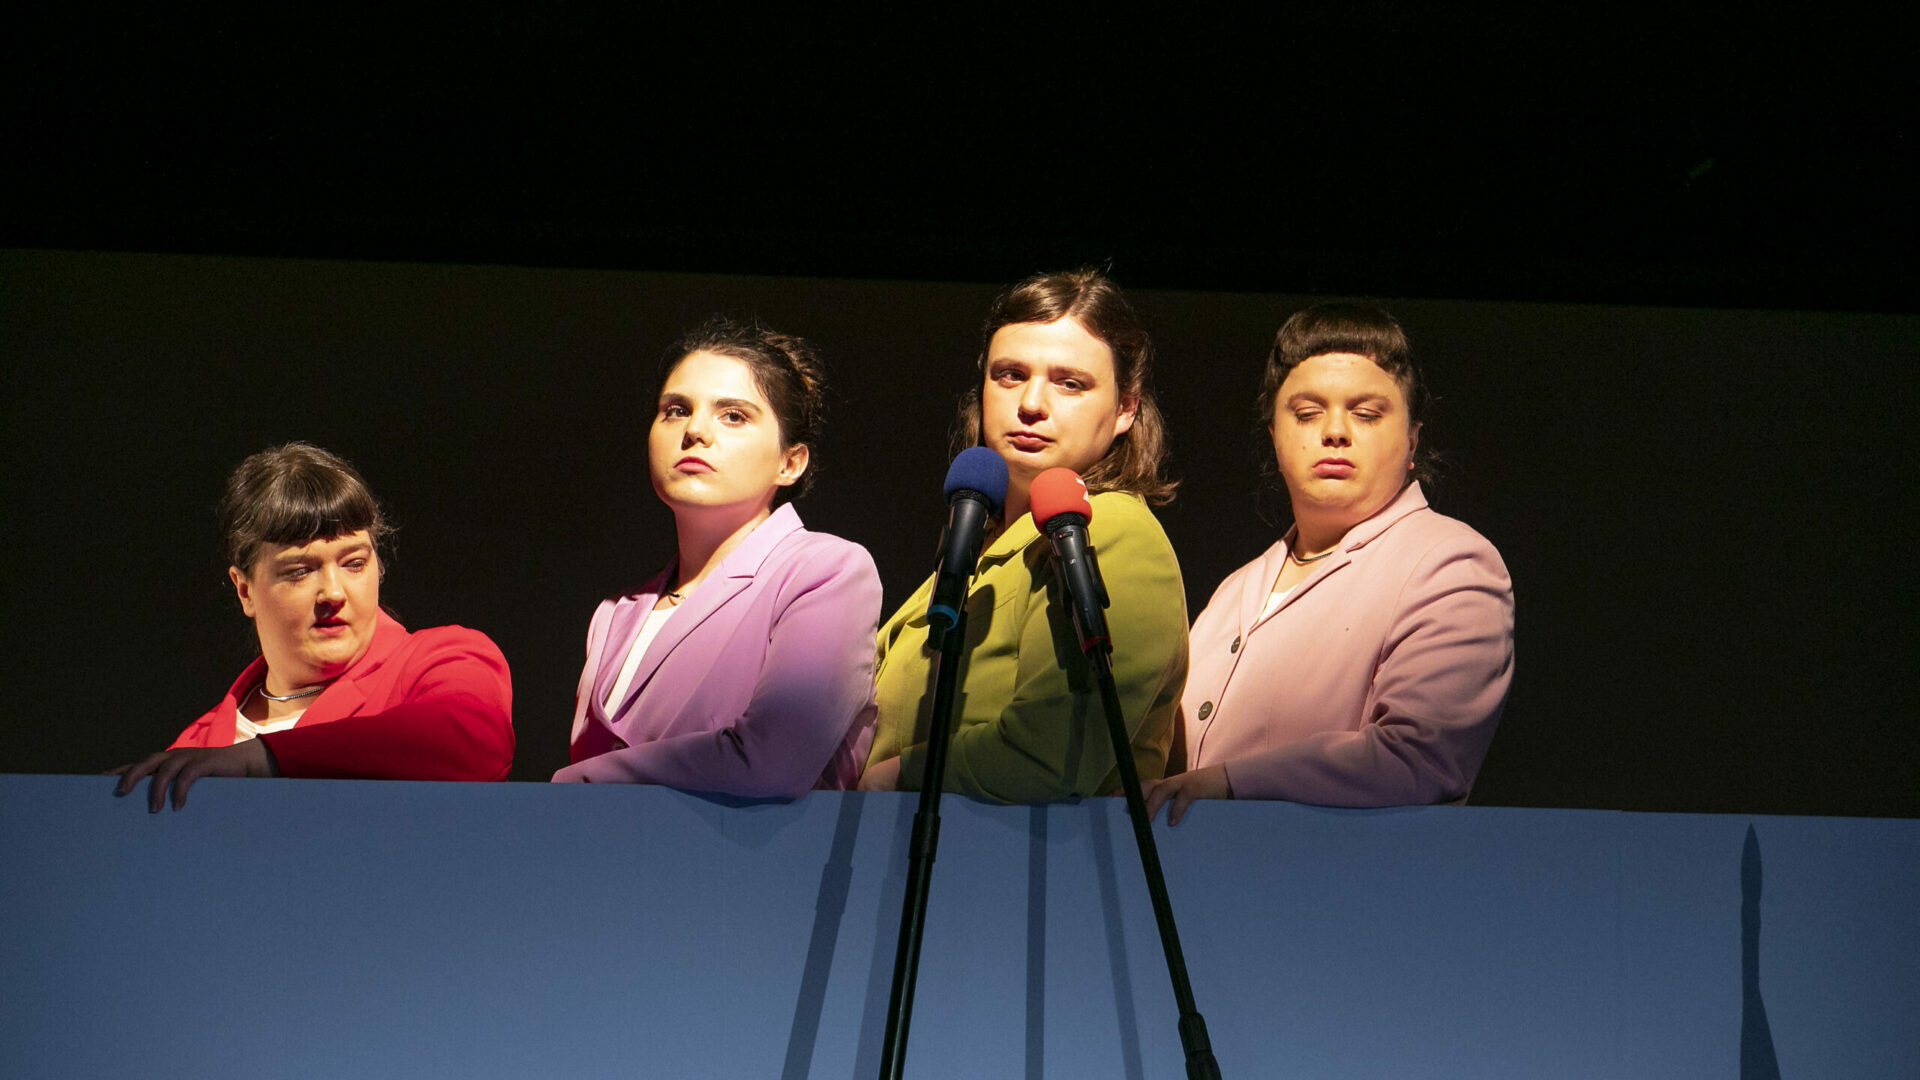 Scene photo of a performance: 4 women on a stage wearing blazers standing behind each other.